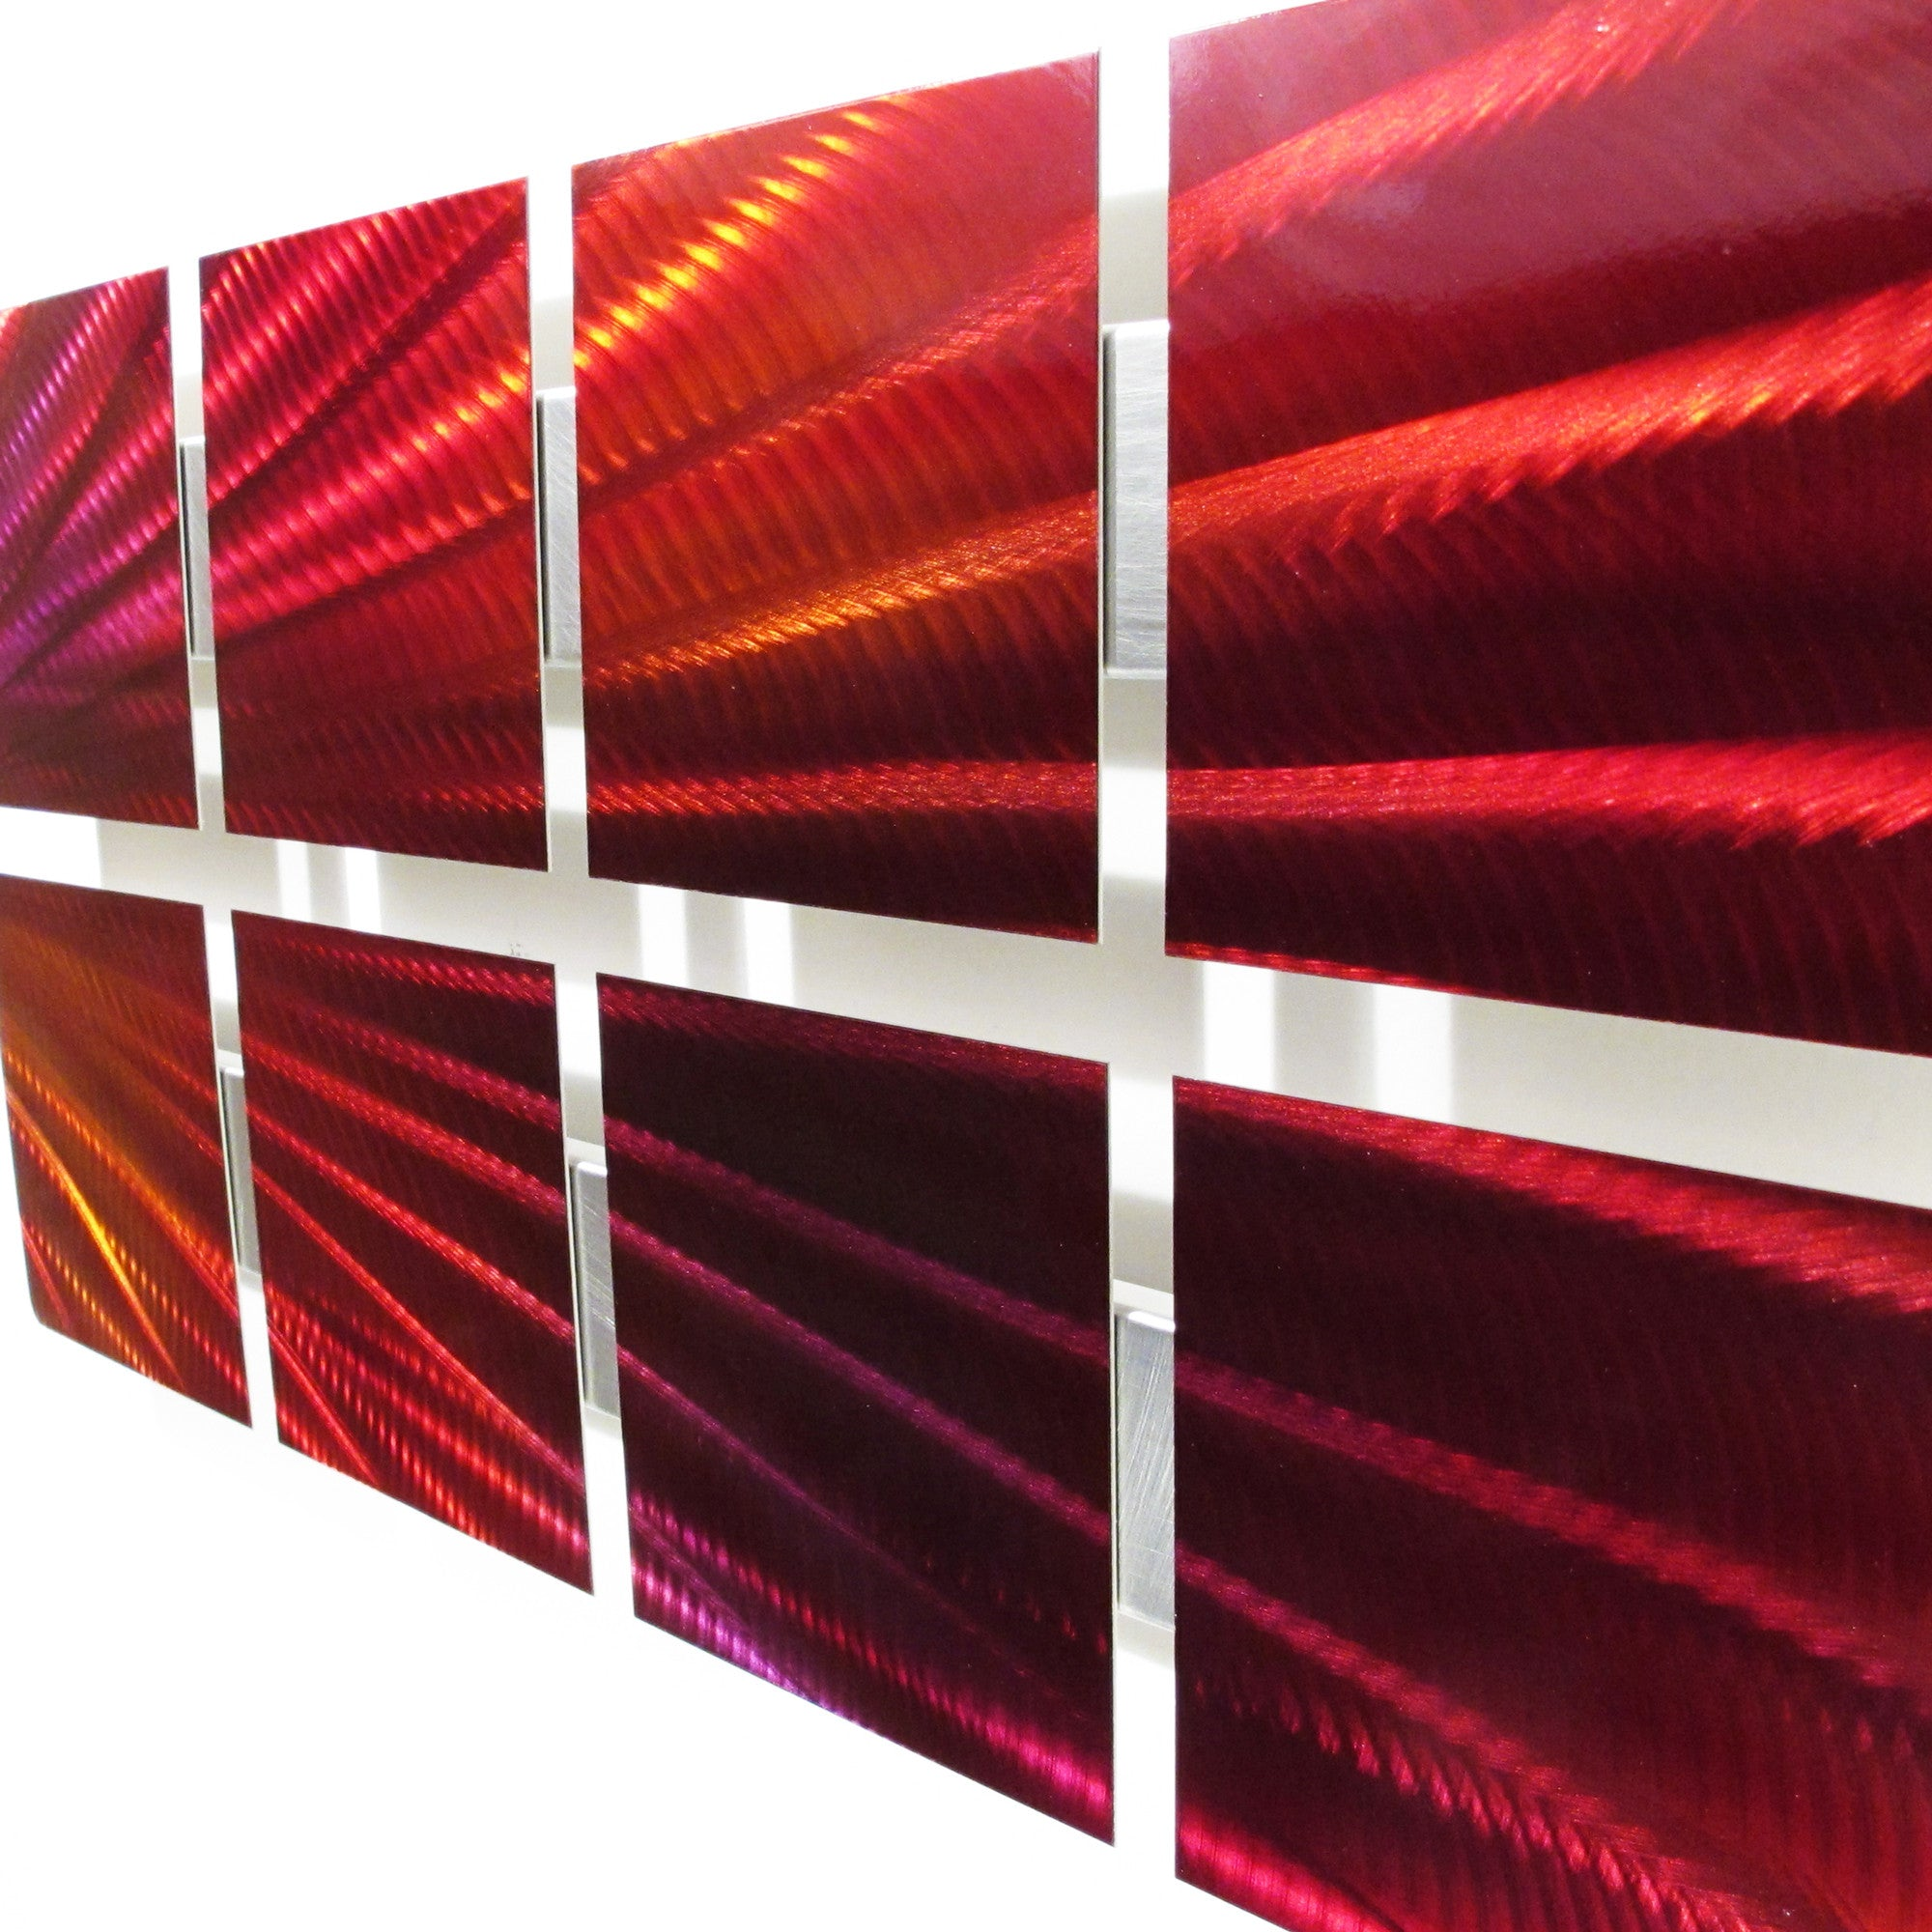 "Red Metal Wall Art blue starlight"" 26""x14"" modern abstract metal wall art sculpture"